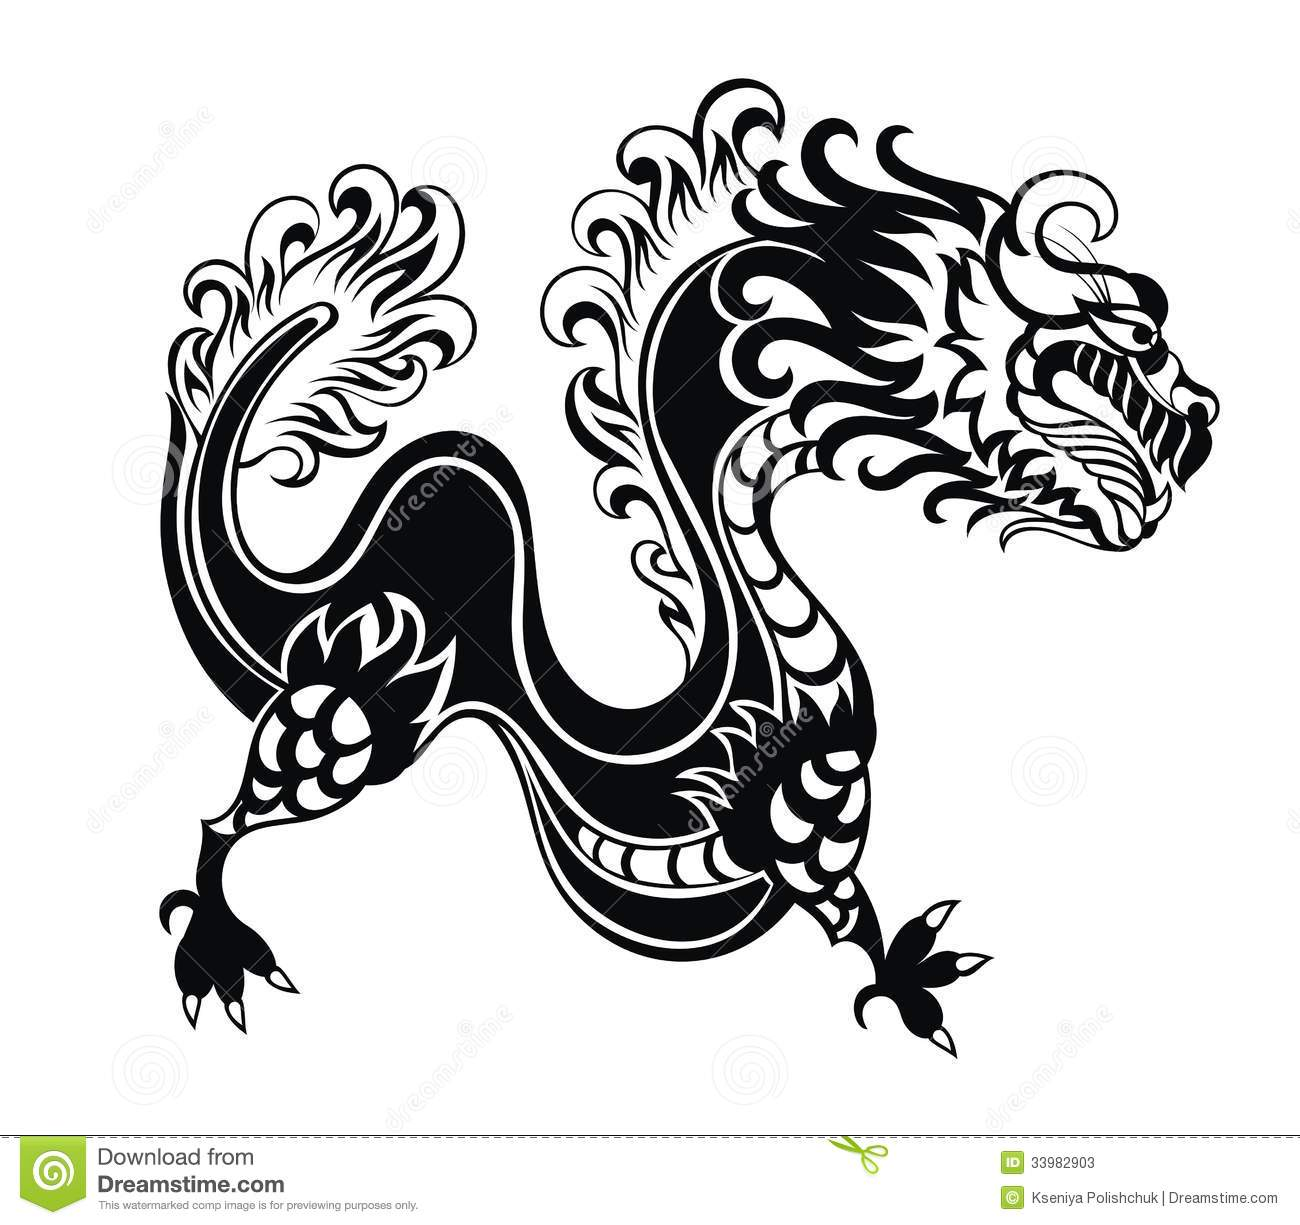 Chinese new year dragon symbol images symbol and sign ideas chinese dragon stock vector illustration of fantasy 33982903 chinese dragon buycottarizona biocorpaavc